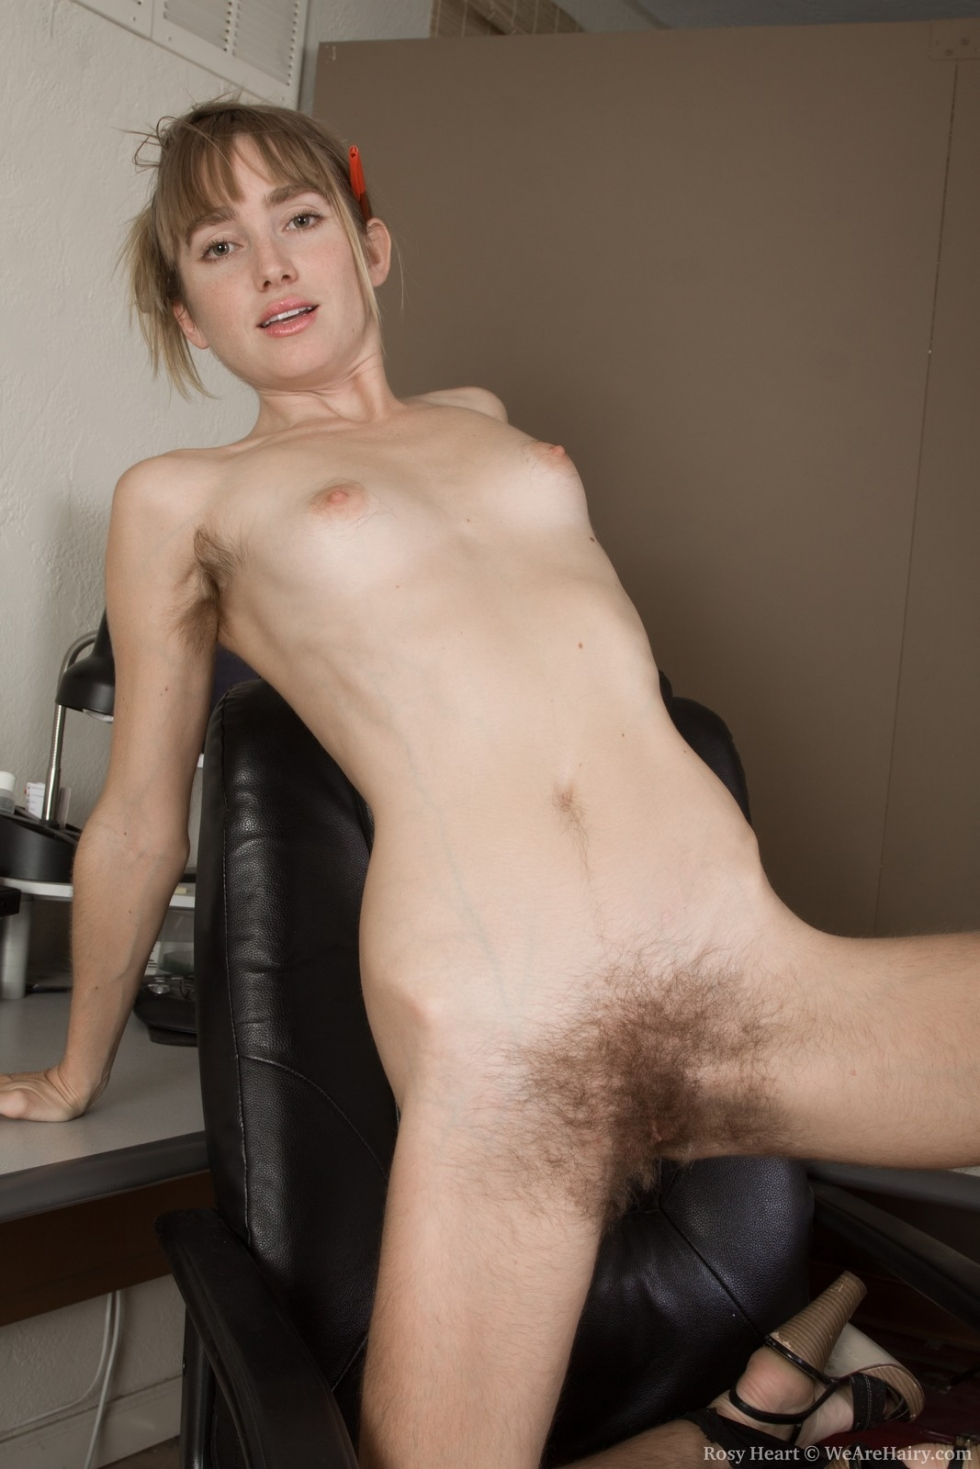 extremely hairy naked girl